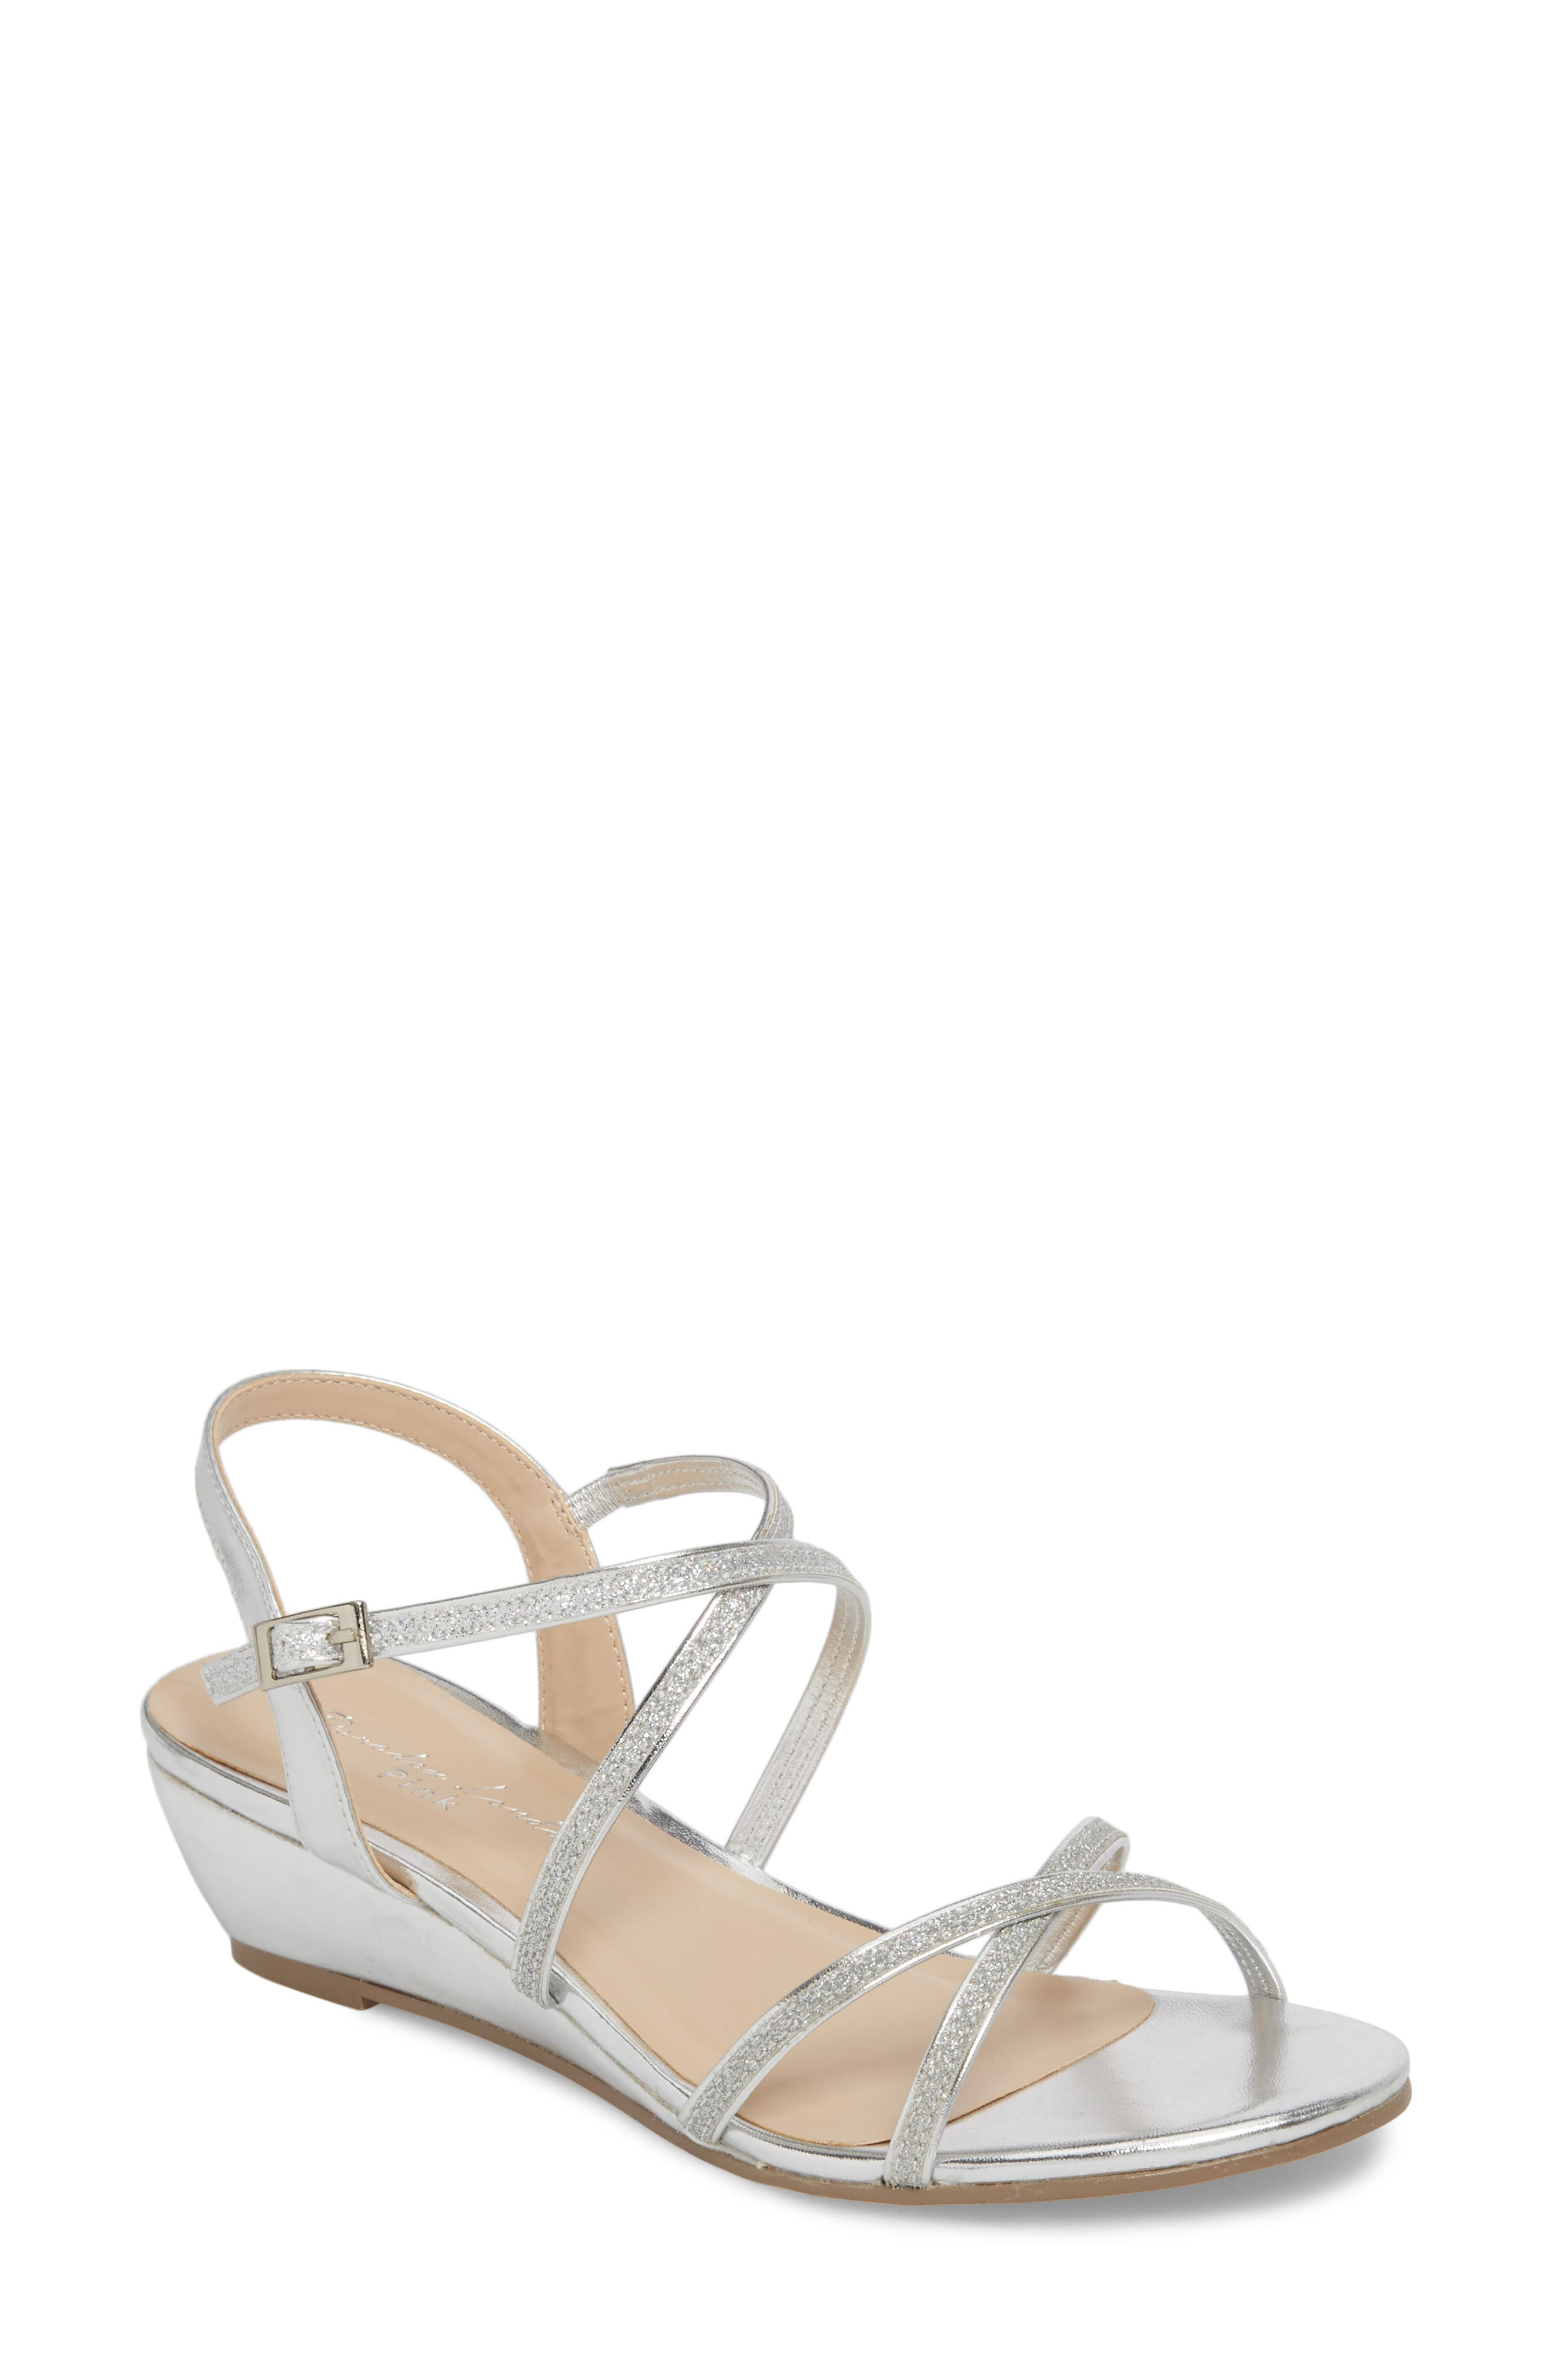 Kadie Wedge Sandal,                         Main,                         color, SILVER GLITTER